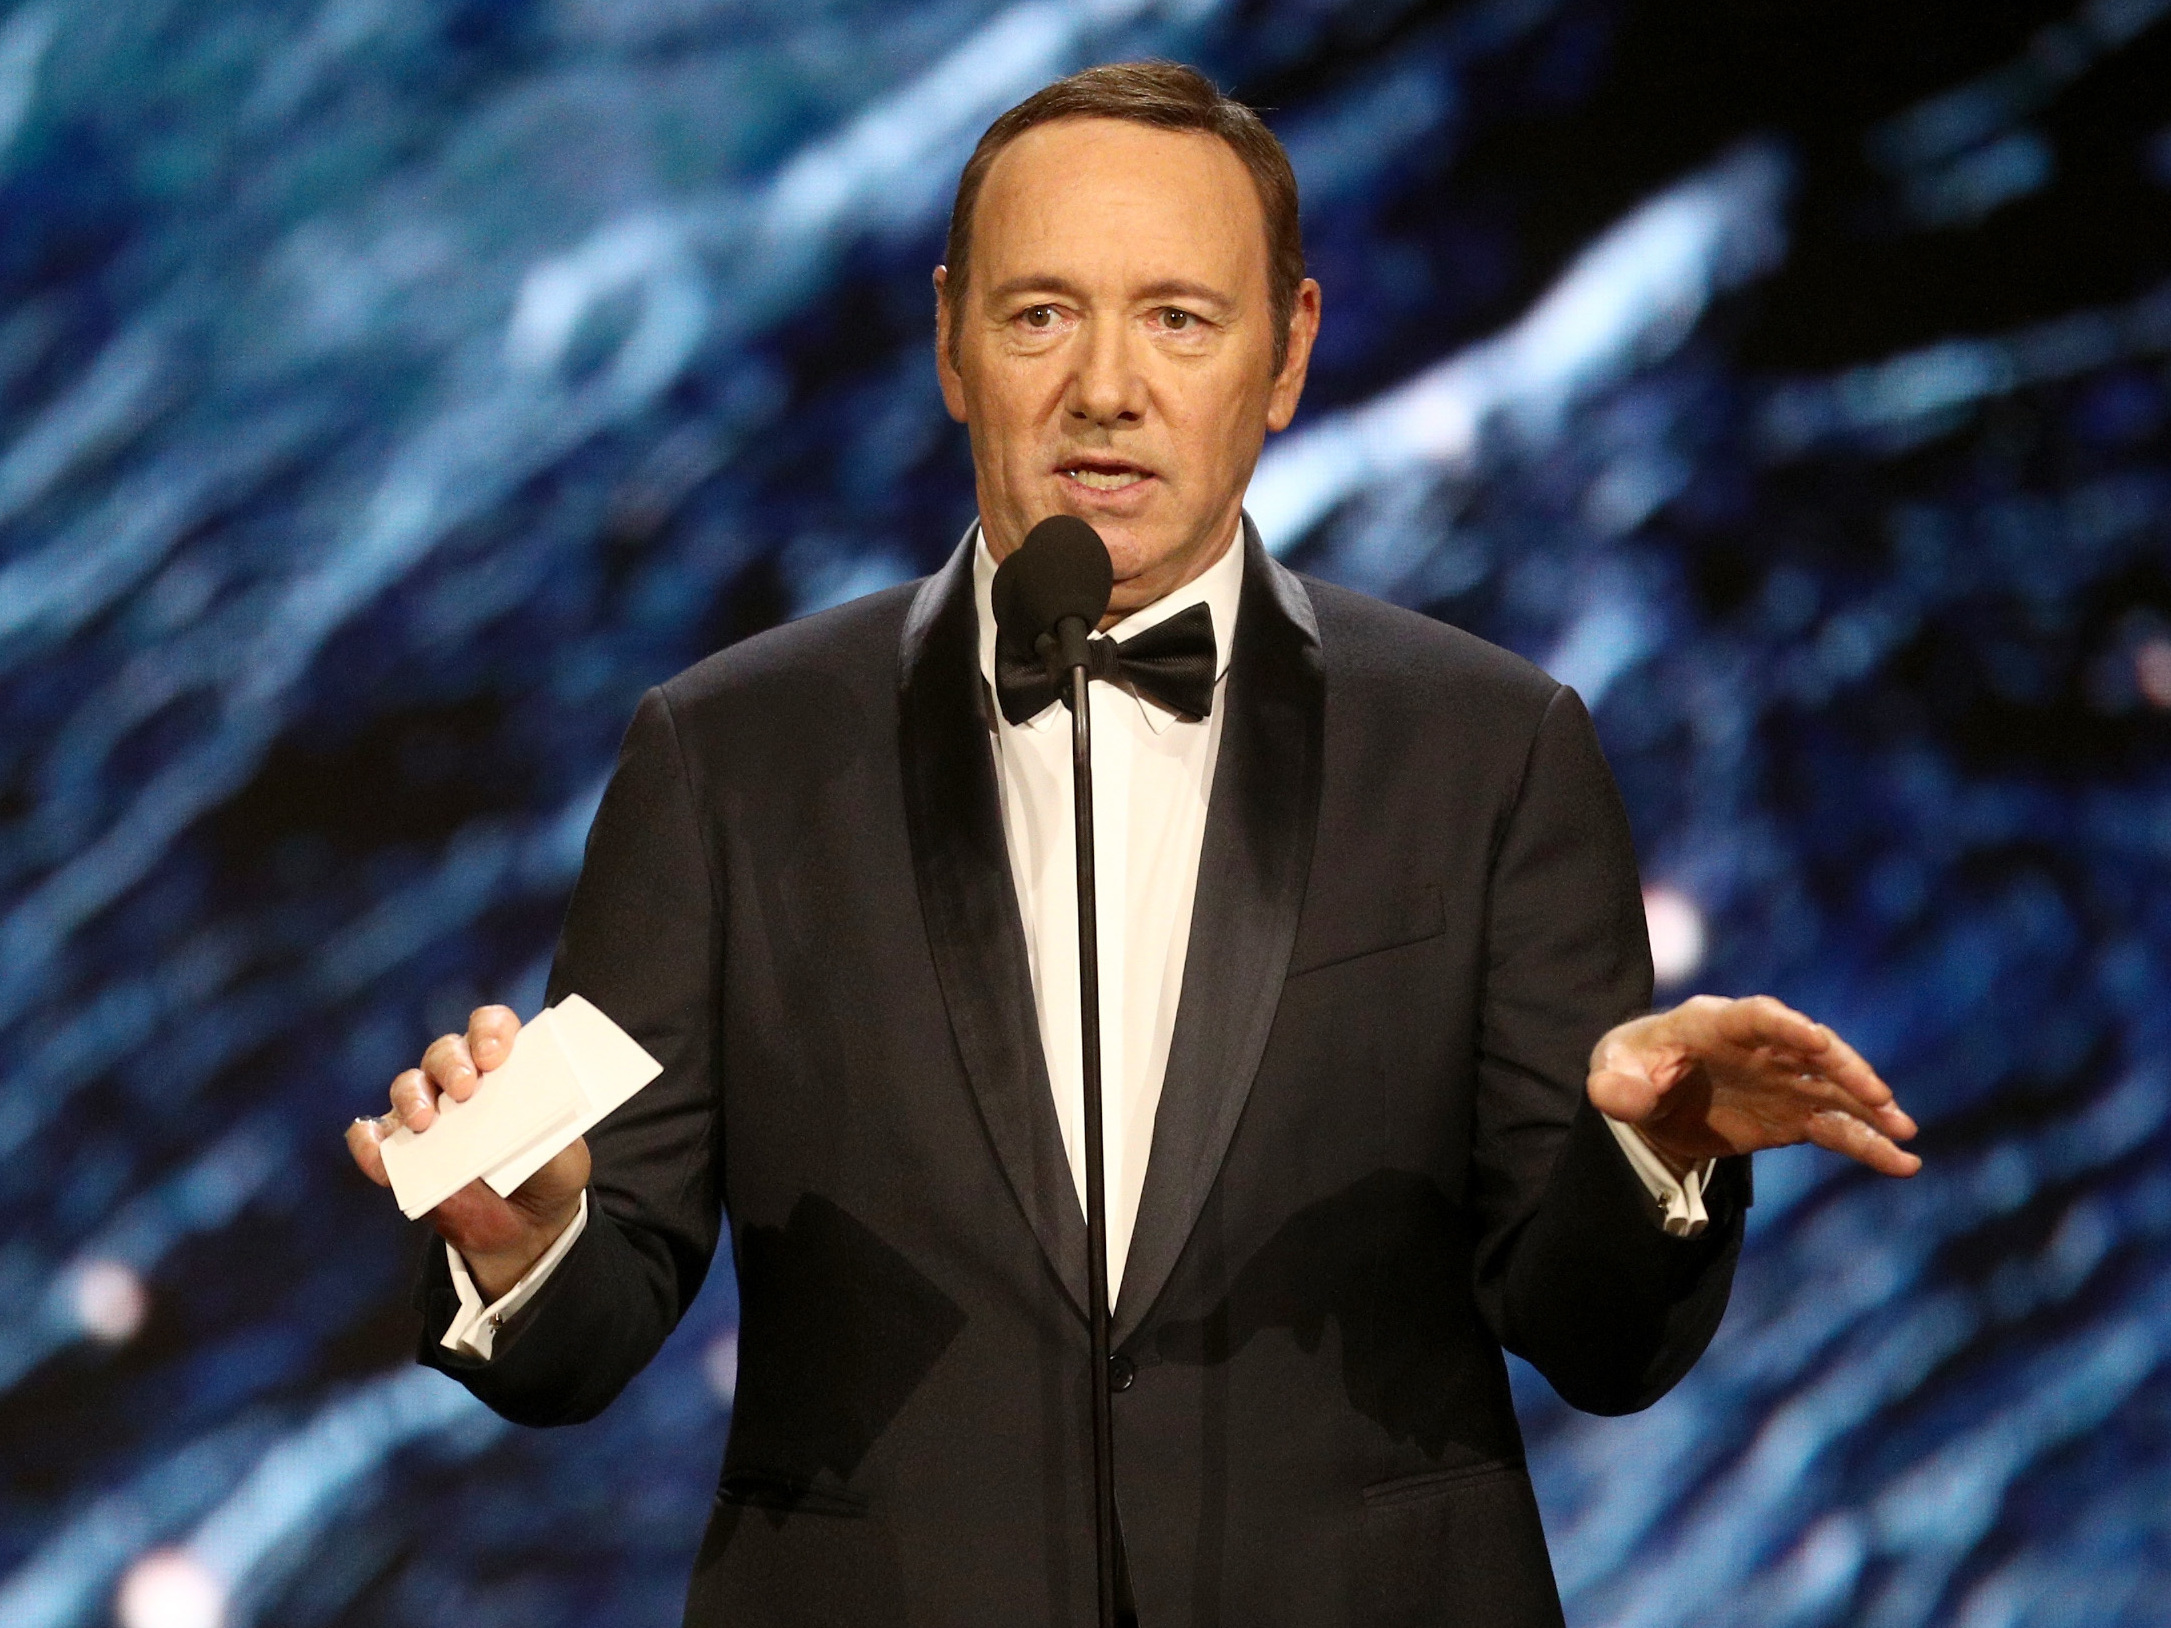 Netflix also says it will not complete post-production work on the film Gore, which Kevin Spacey produced and starred in.